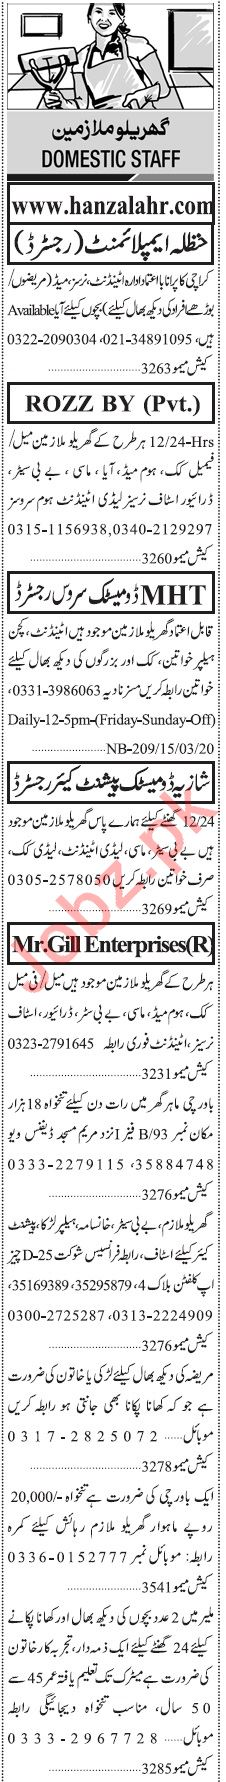 Jang Sunday Classified Ads 15th March 2020 Domestic Staff